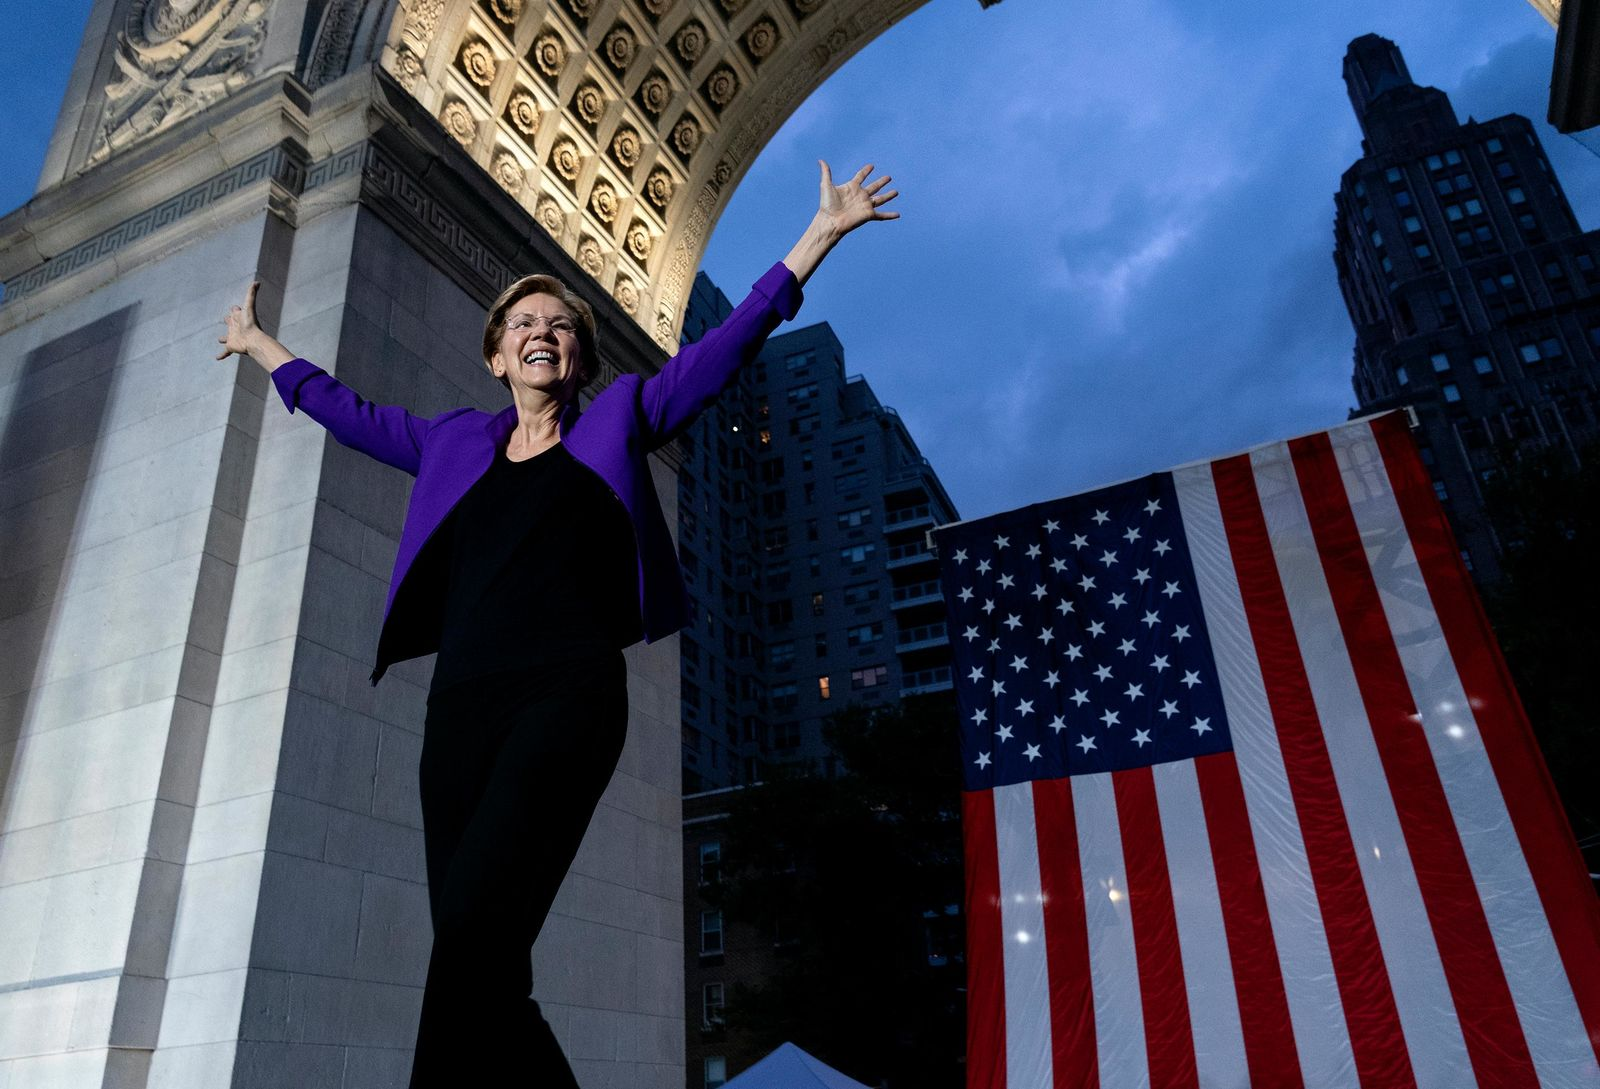 FILE- Democratic presidential candidate U.S. Sen. Elizabeth Warren takes the stage before addressing supporters at a rally, Monday, Sept. 16, 2019, in New York. (AP Photo/Craig Ruttle)